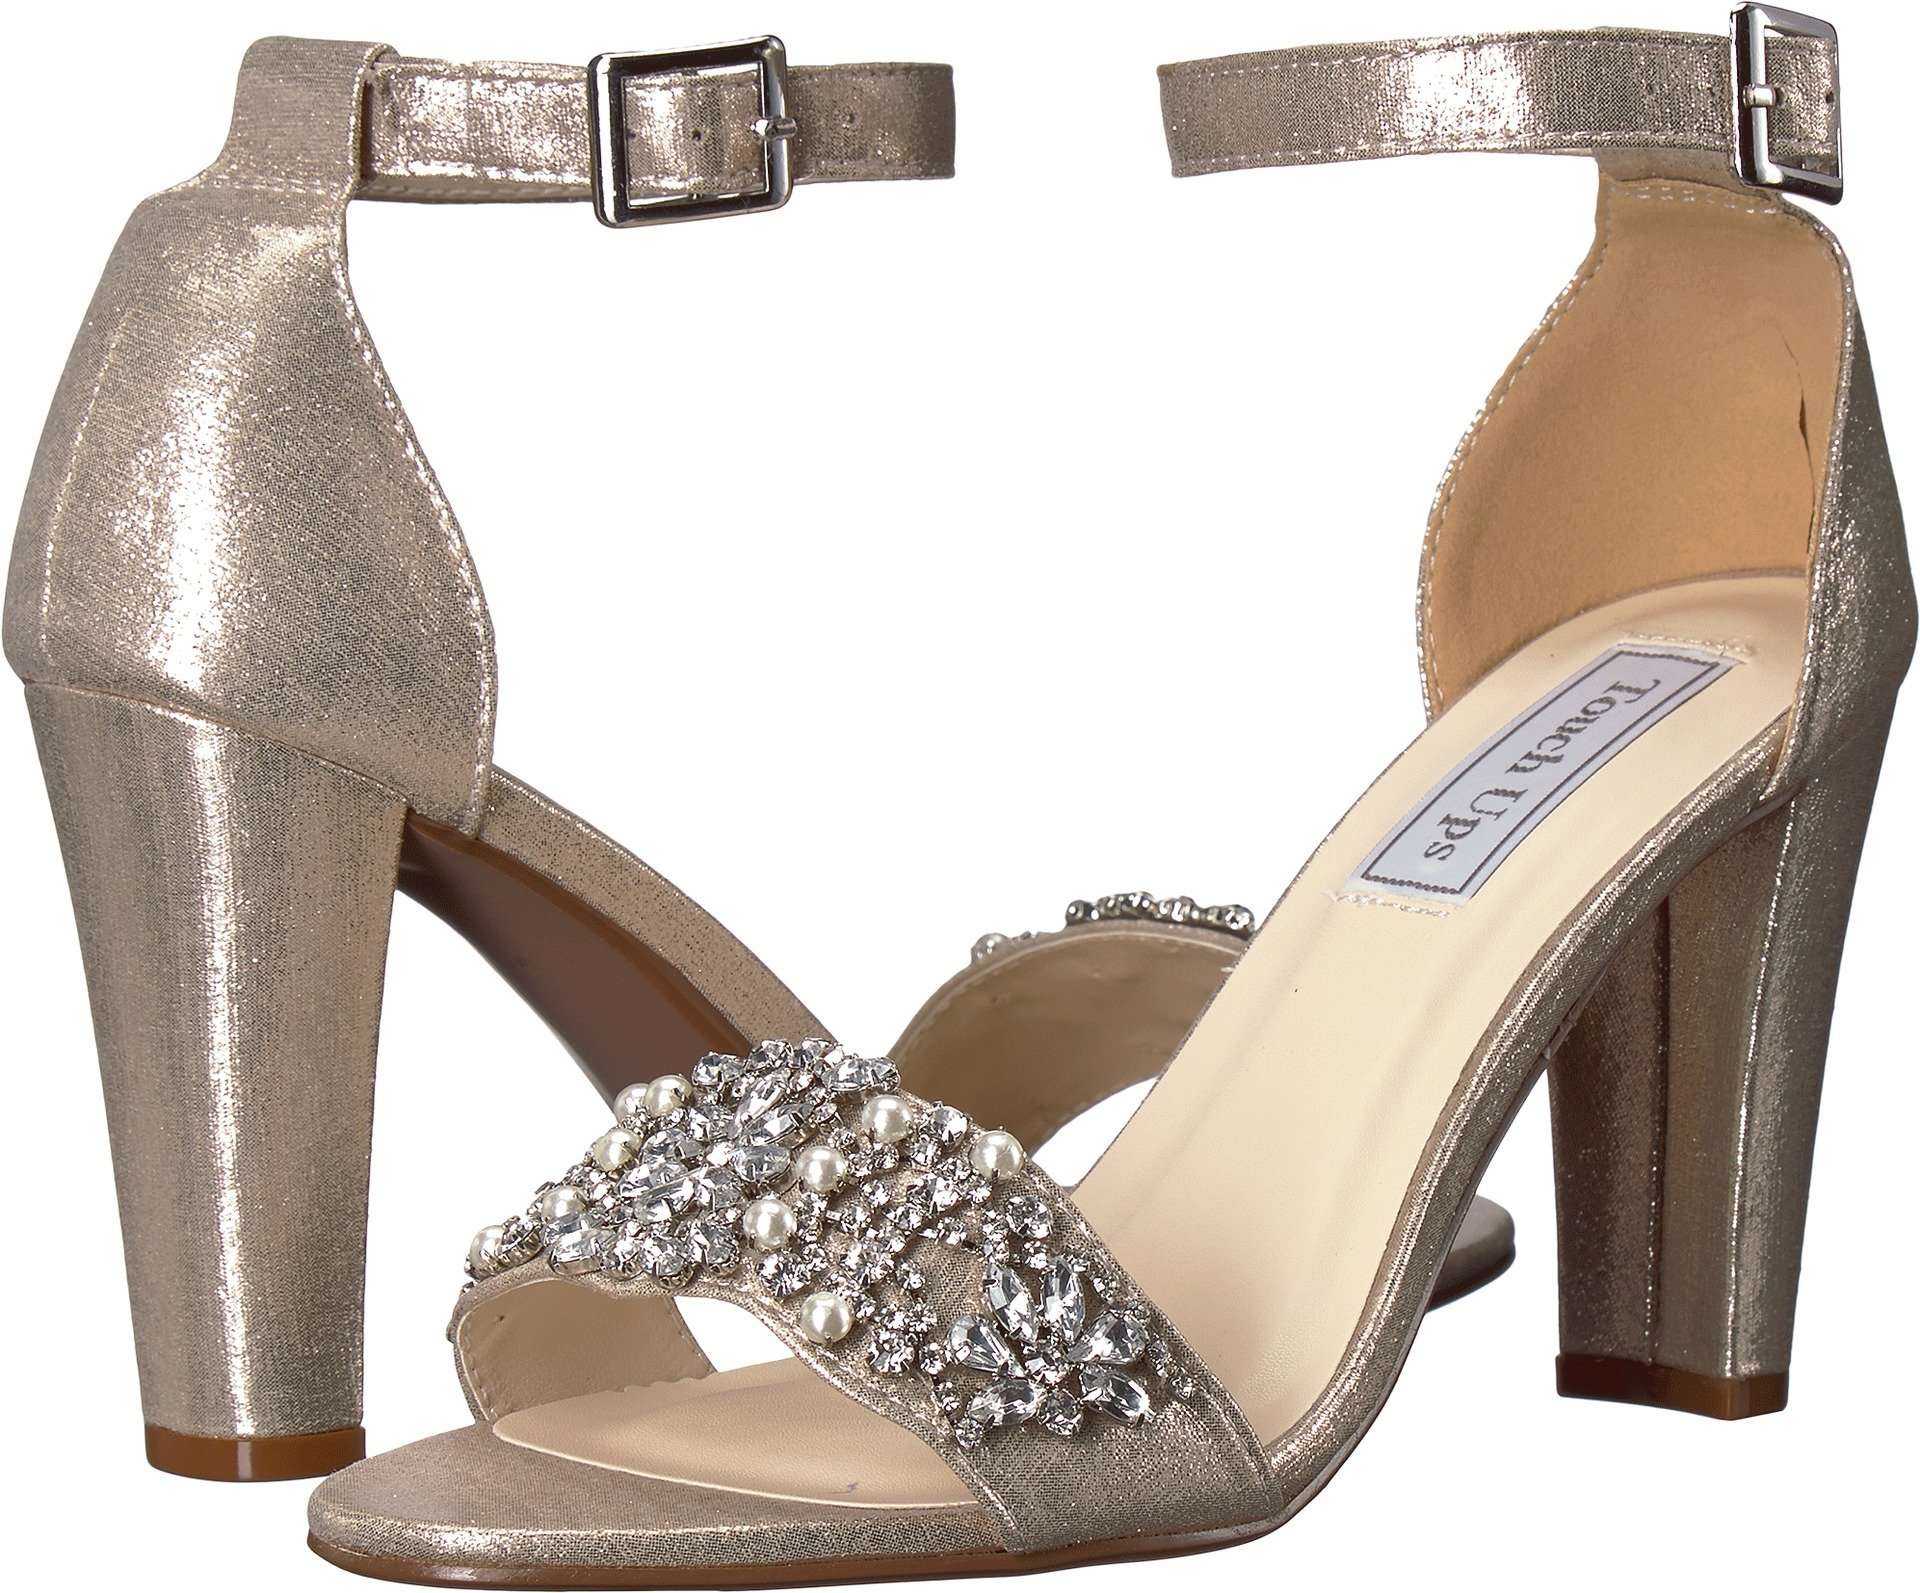 Touch Ups Women's Felicity Heeled Sandal, Champagne, 7.5 M US